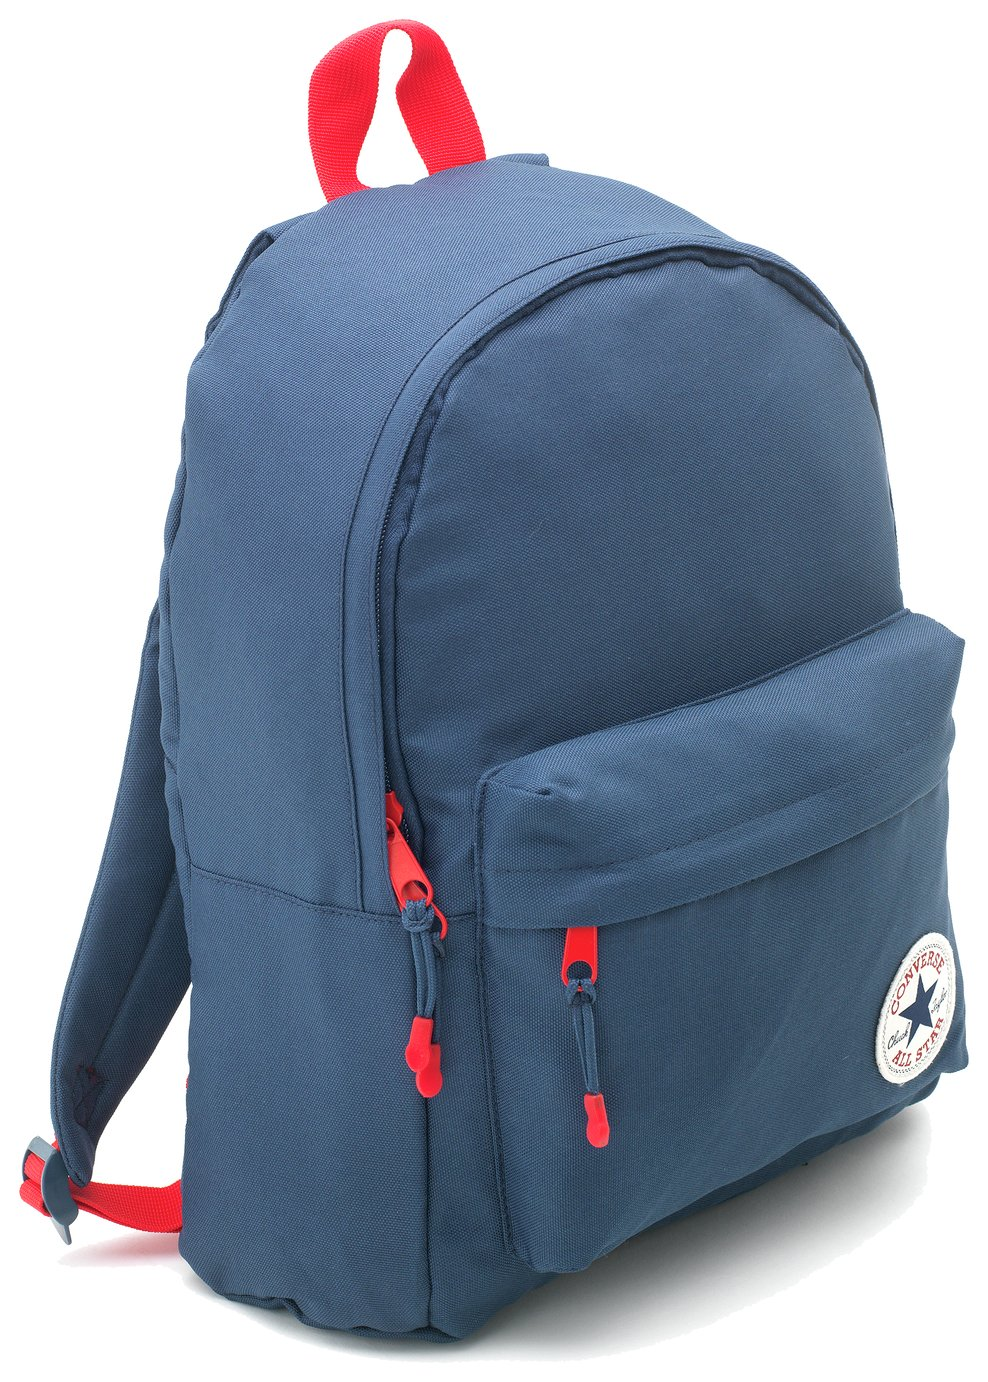 Converse All Star Backpack - Navy from Converse